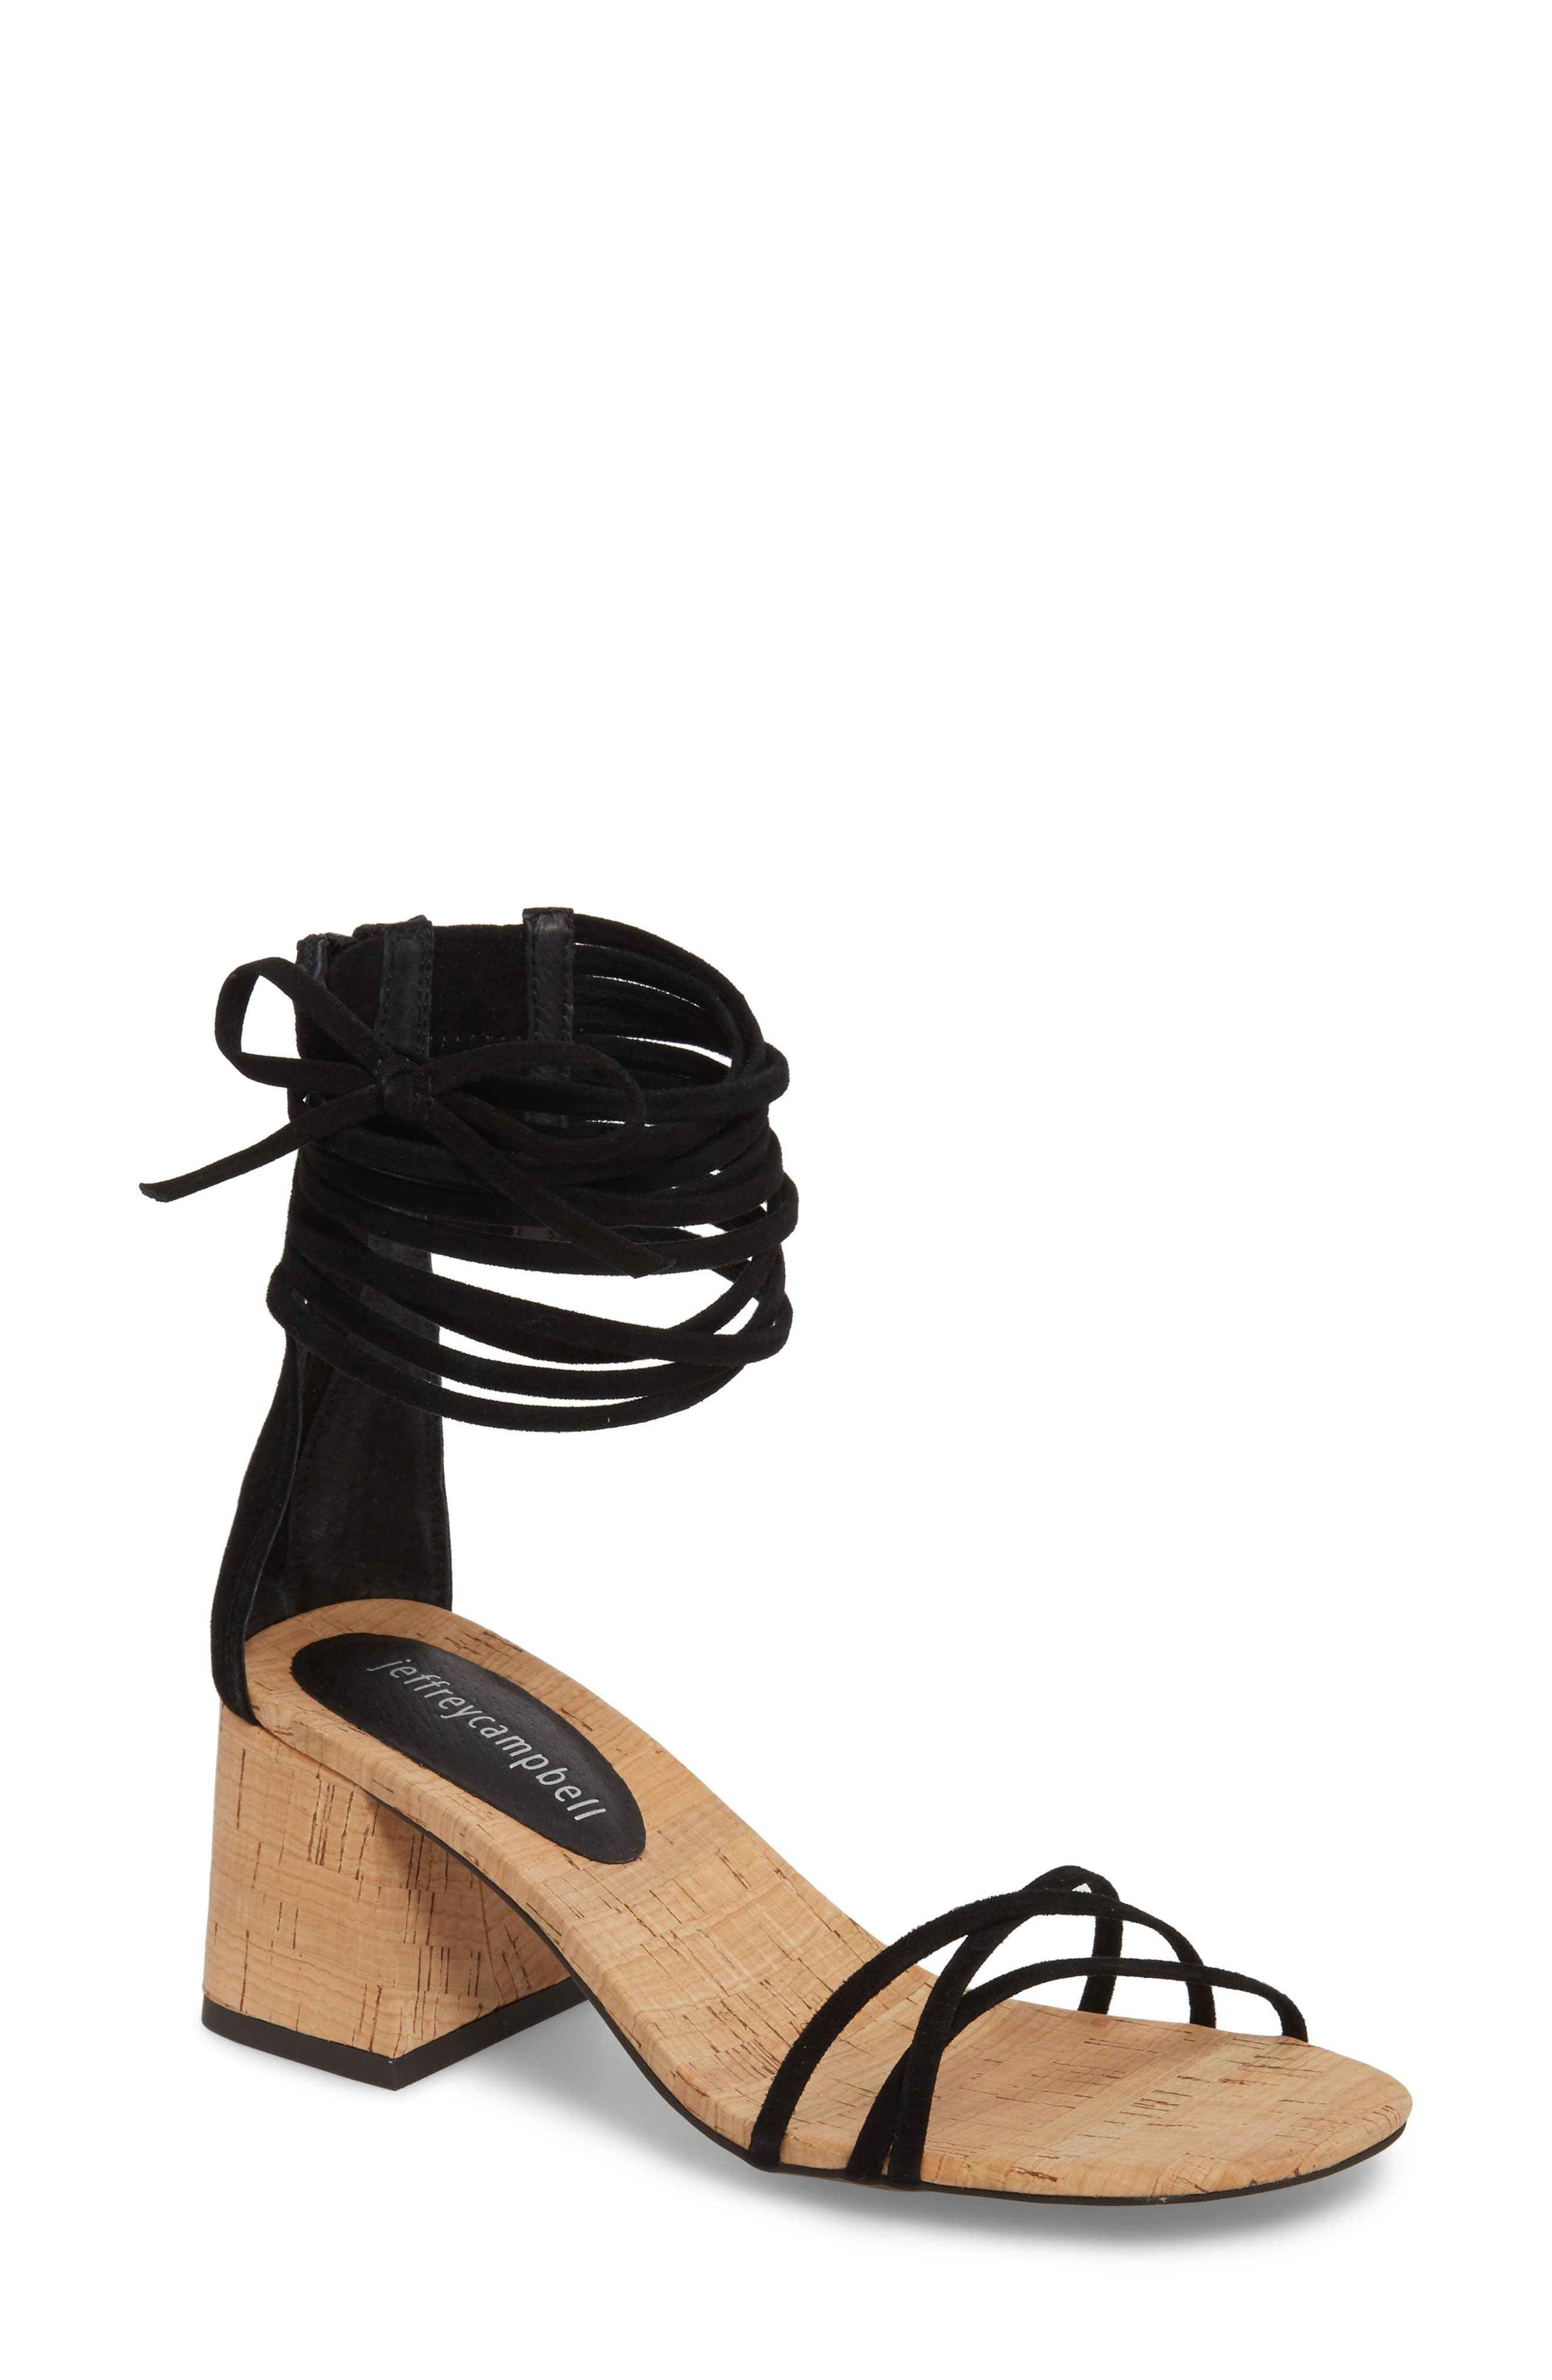 Everglade Ankle Strap Sandal,                             Main thumbnail 1, color,                             005